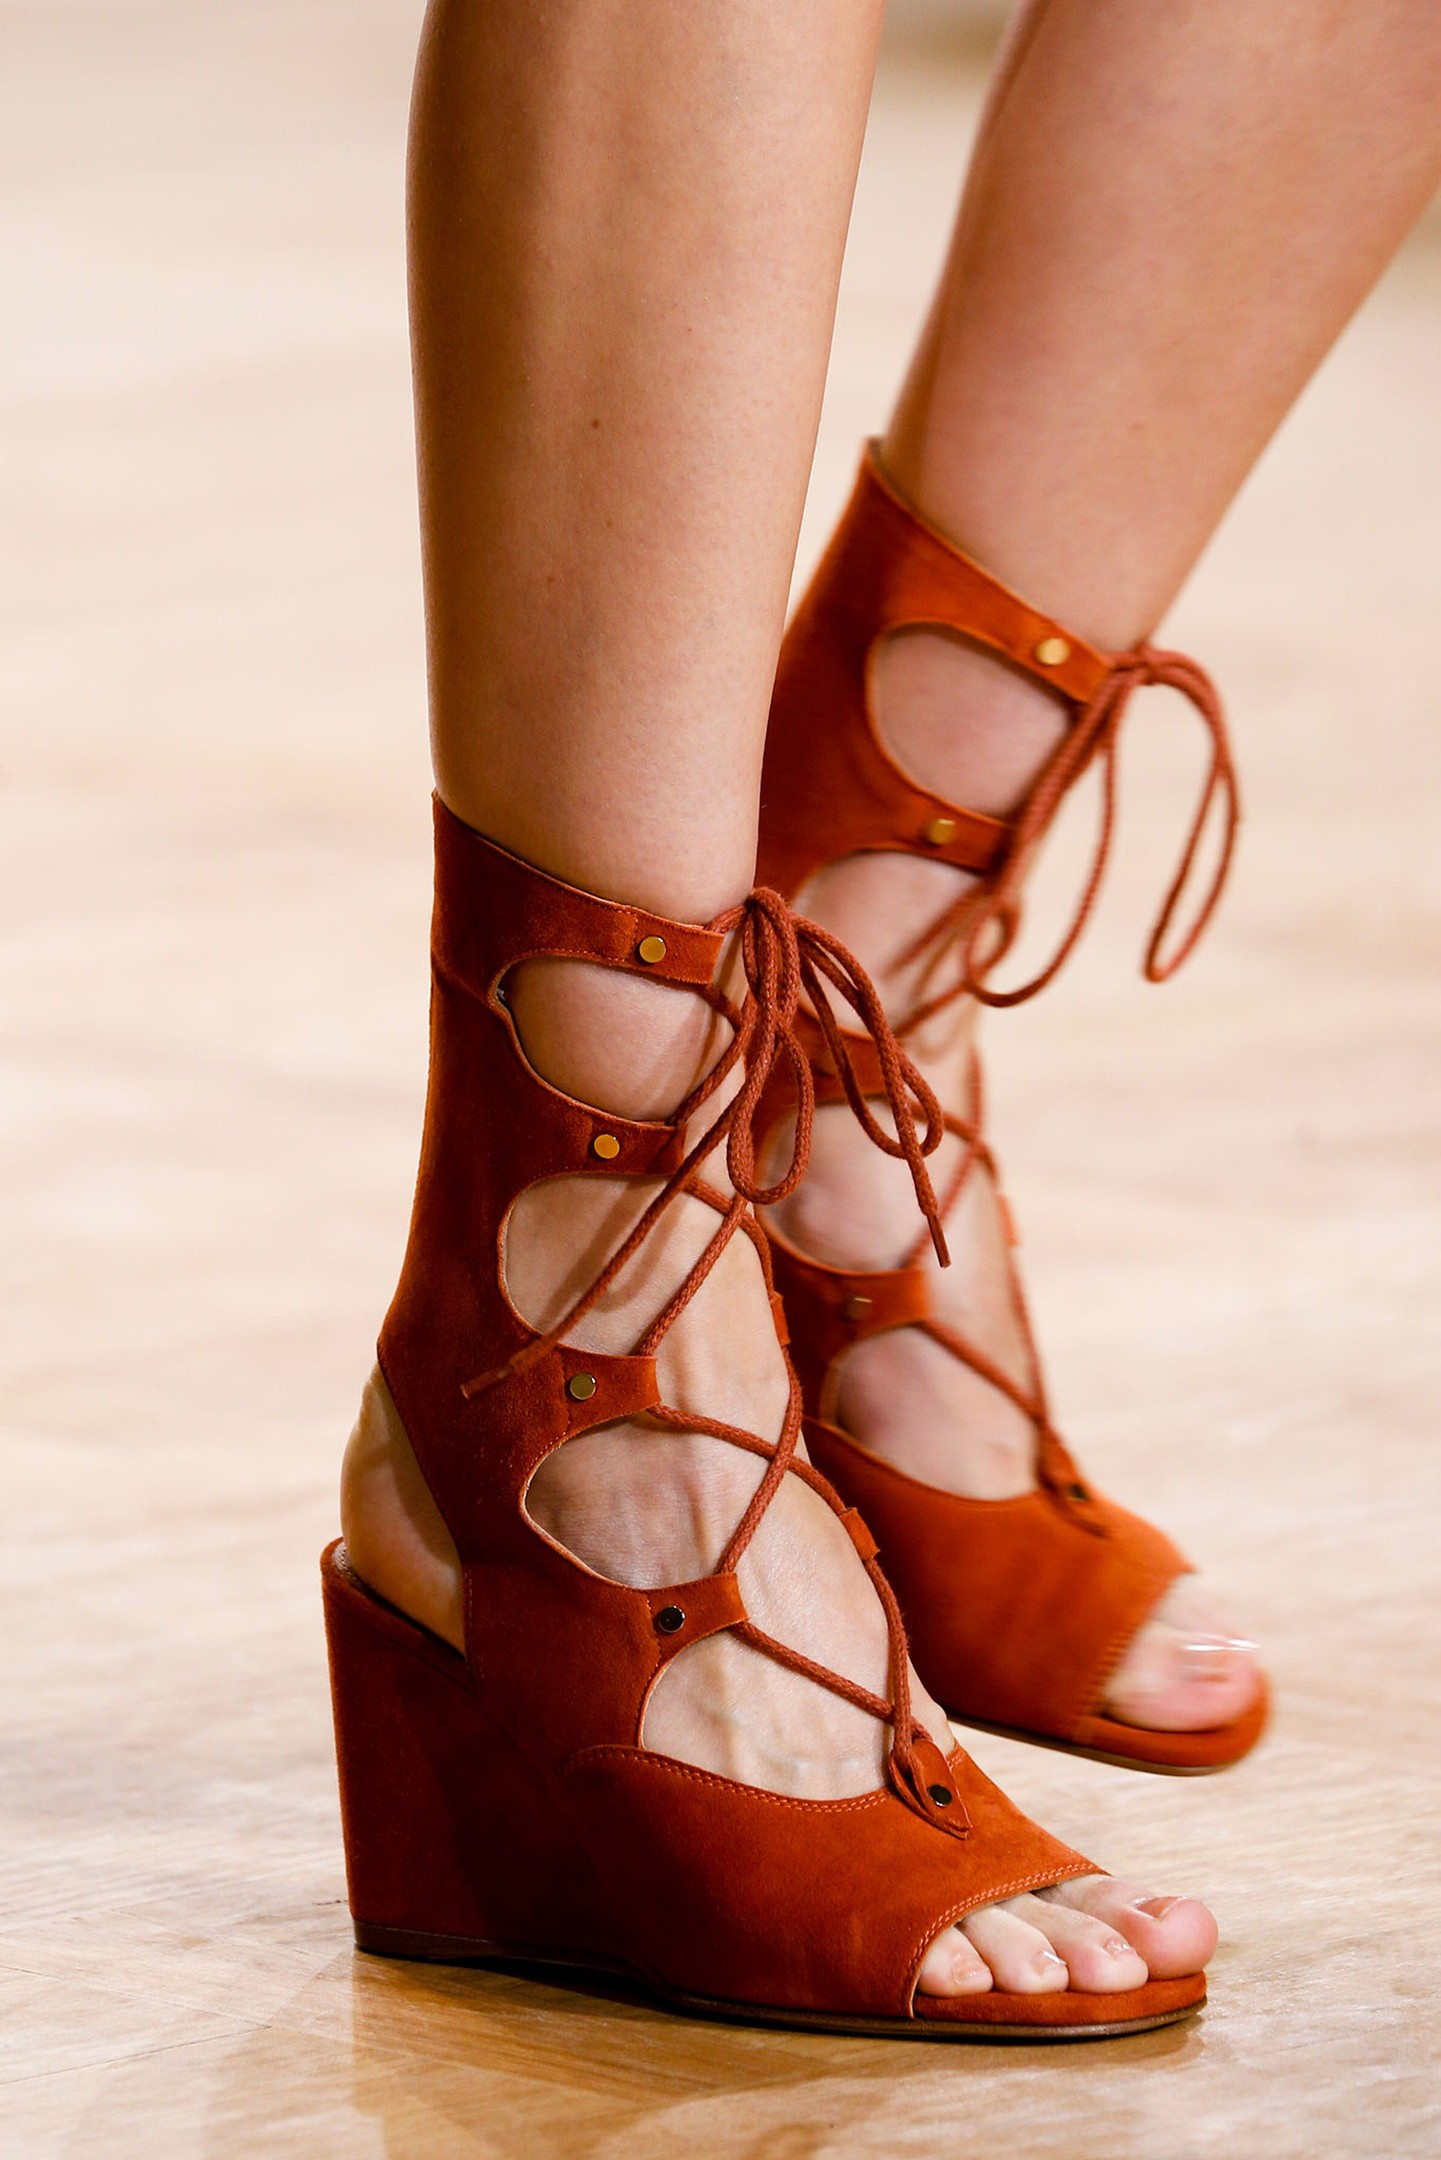 free shipping best store to get Chloé Suede Gladiator Sandals new online discount wholesale price 2p8oR8